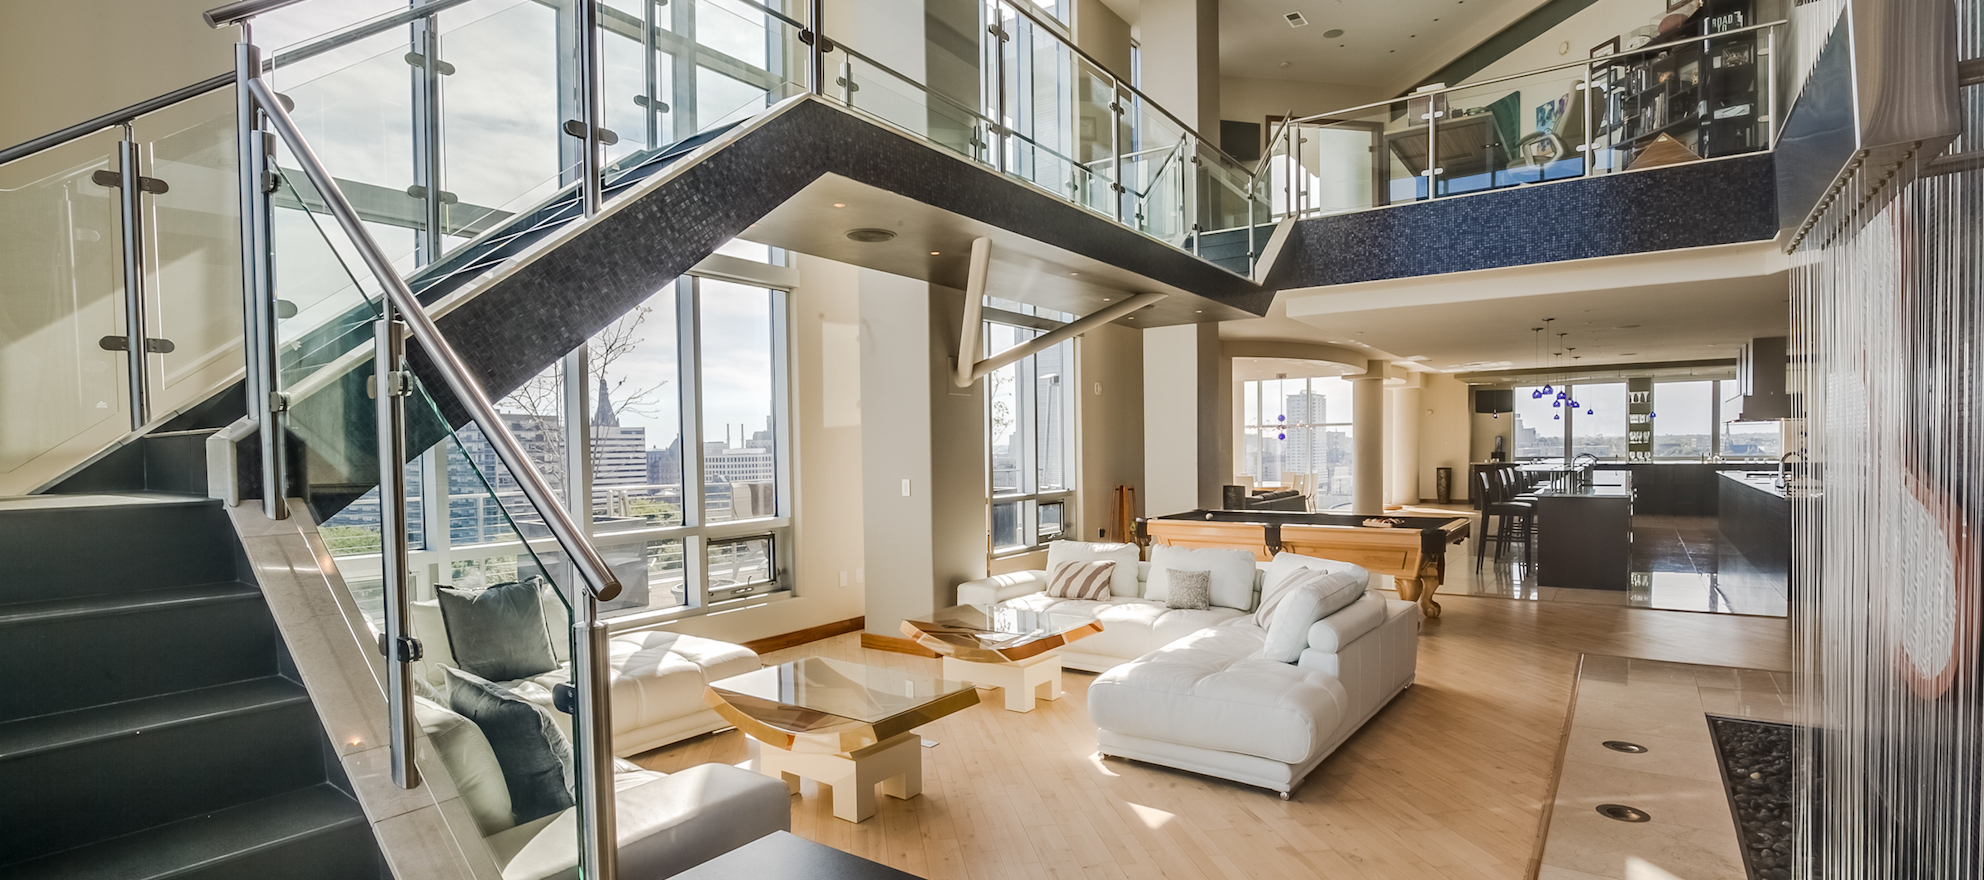 Luxury listing of the day: Modern condo in Milwaukee